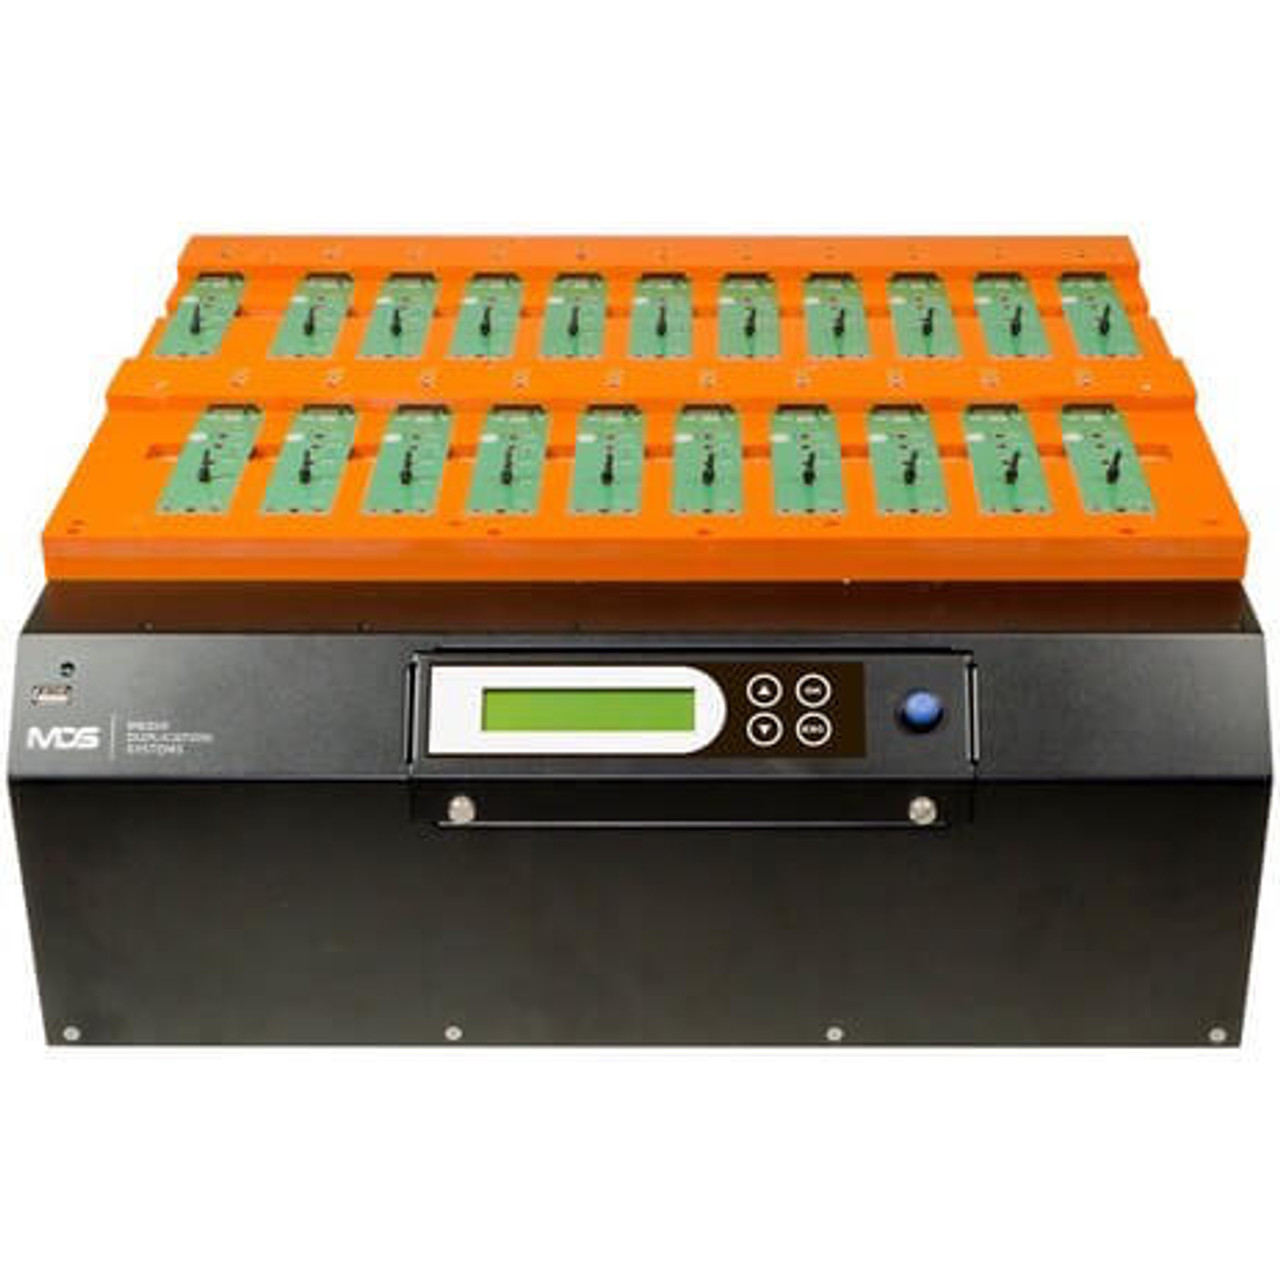 PCIE-1220 M.2 NVMe, AHCI, SATA, SSD Duplicator and Eraser - up to 21 Targets